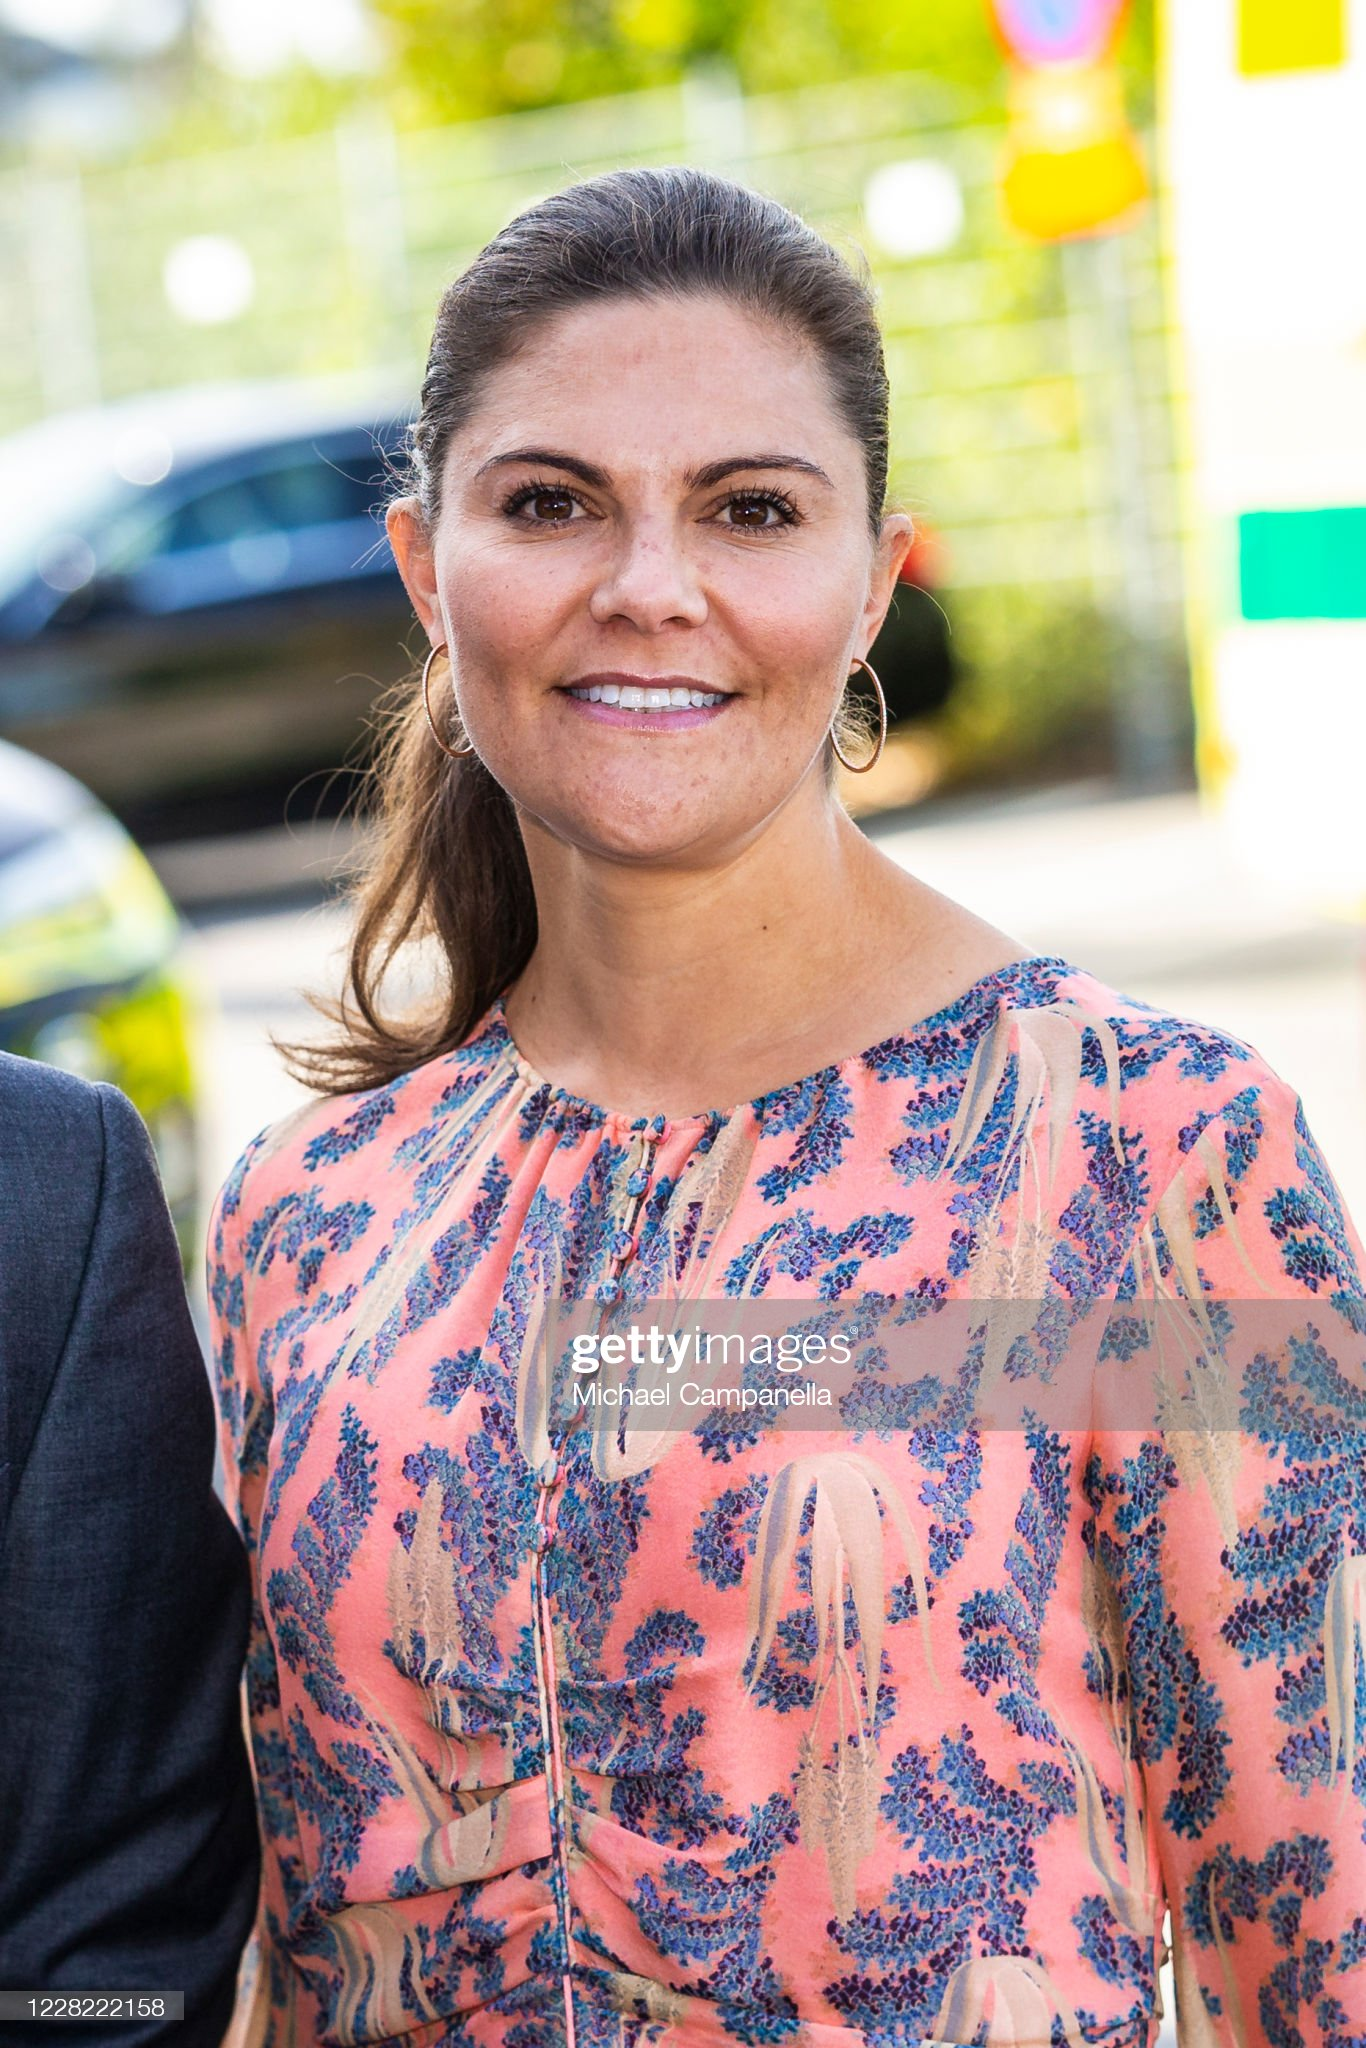 crown-princess-victoria-of-sweden-visits-an-ambulance-station-in-the-picture-id1228222158